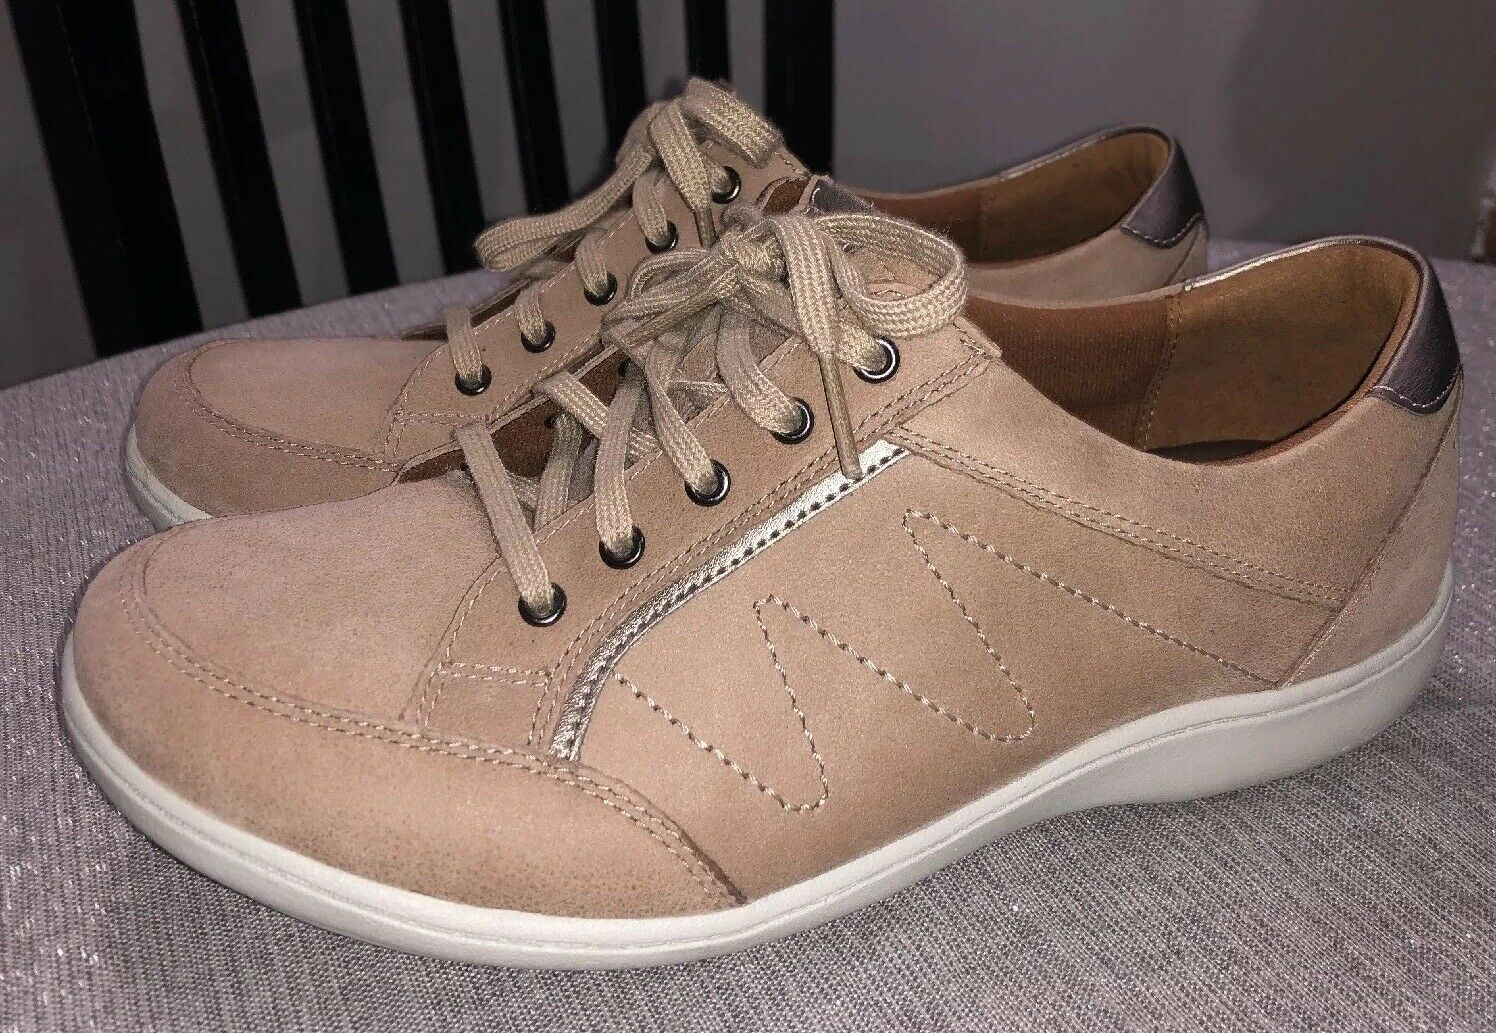 Aravon Womens Bromly Leather Low Top Lace Up Sneakers Tan Sz 9 D  New